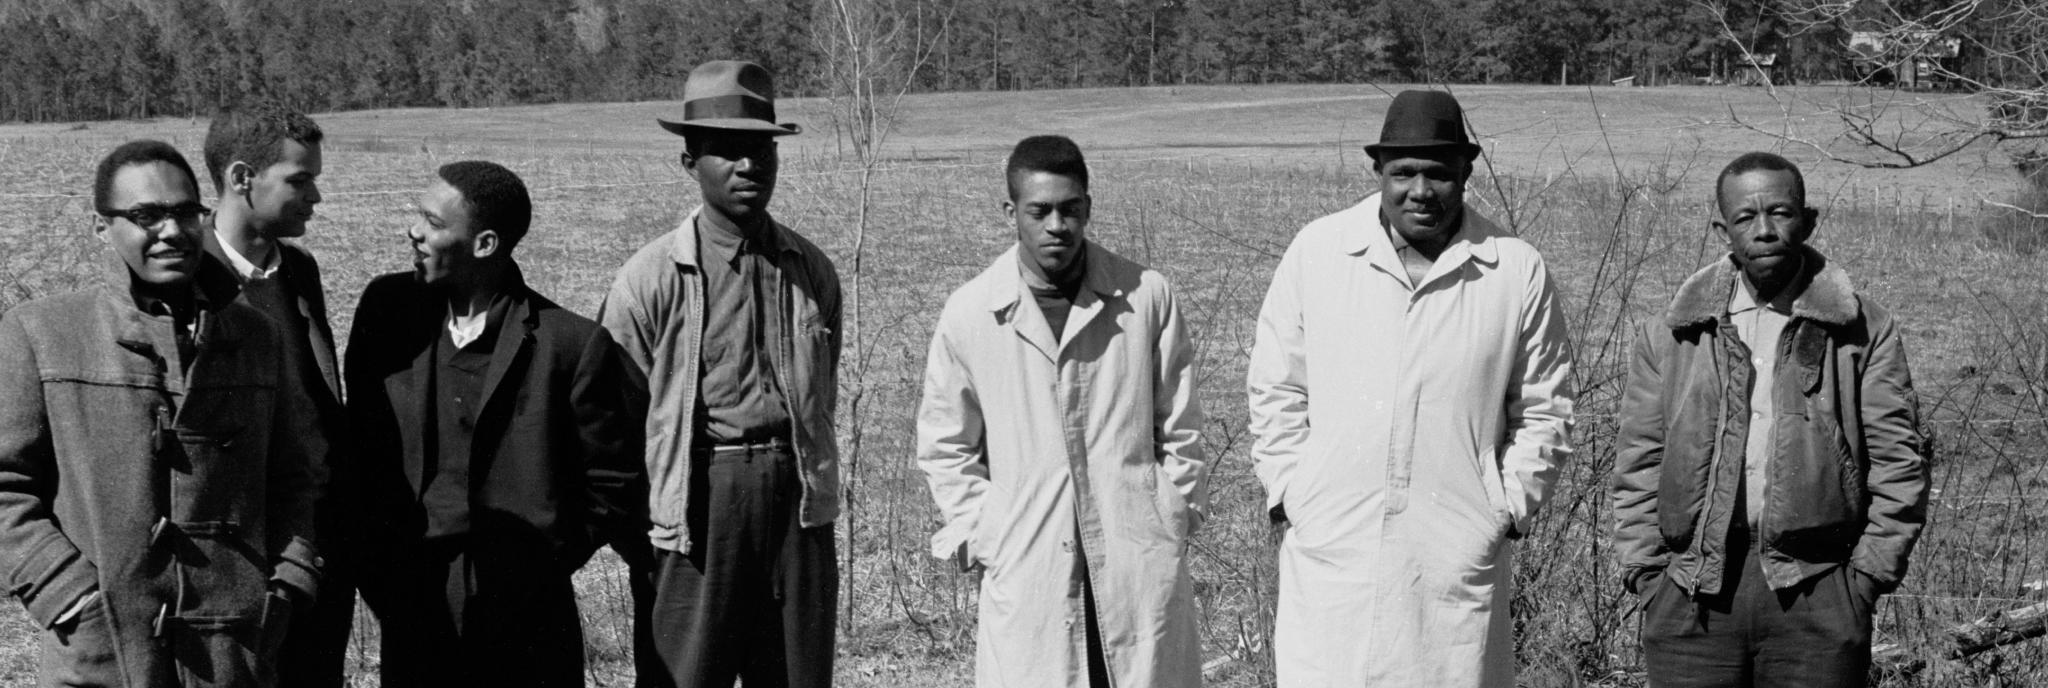 1963, Mississippi Voter Registration Activists (L to R) Bob Moses, Julian Bond, Curtis Hays, unknown activist, Hollis Watkins, Amzie Moore,  and E.W. Steptoe